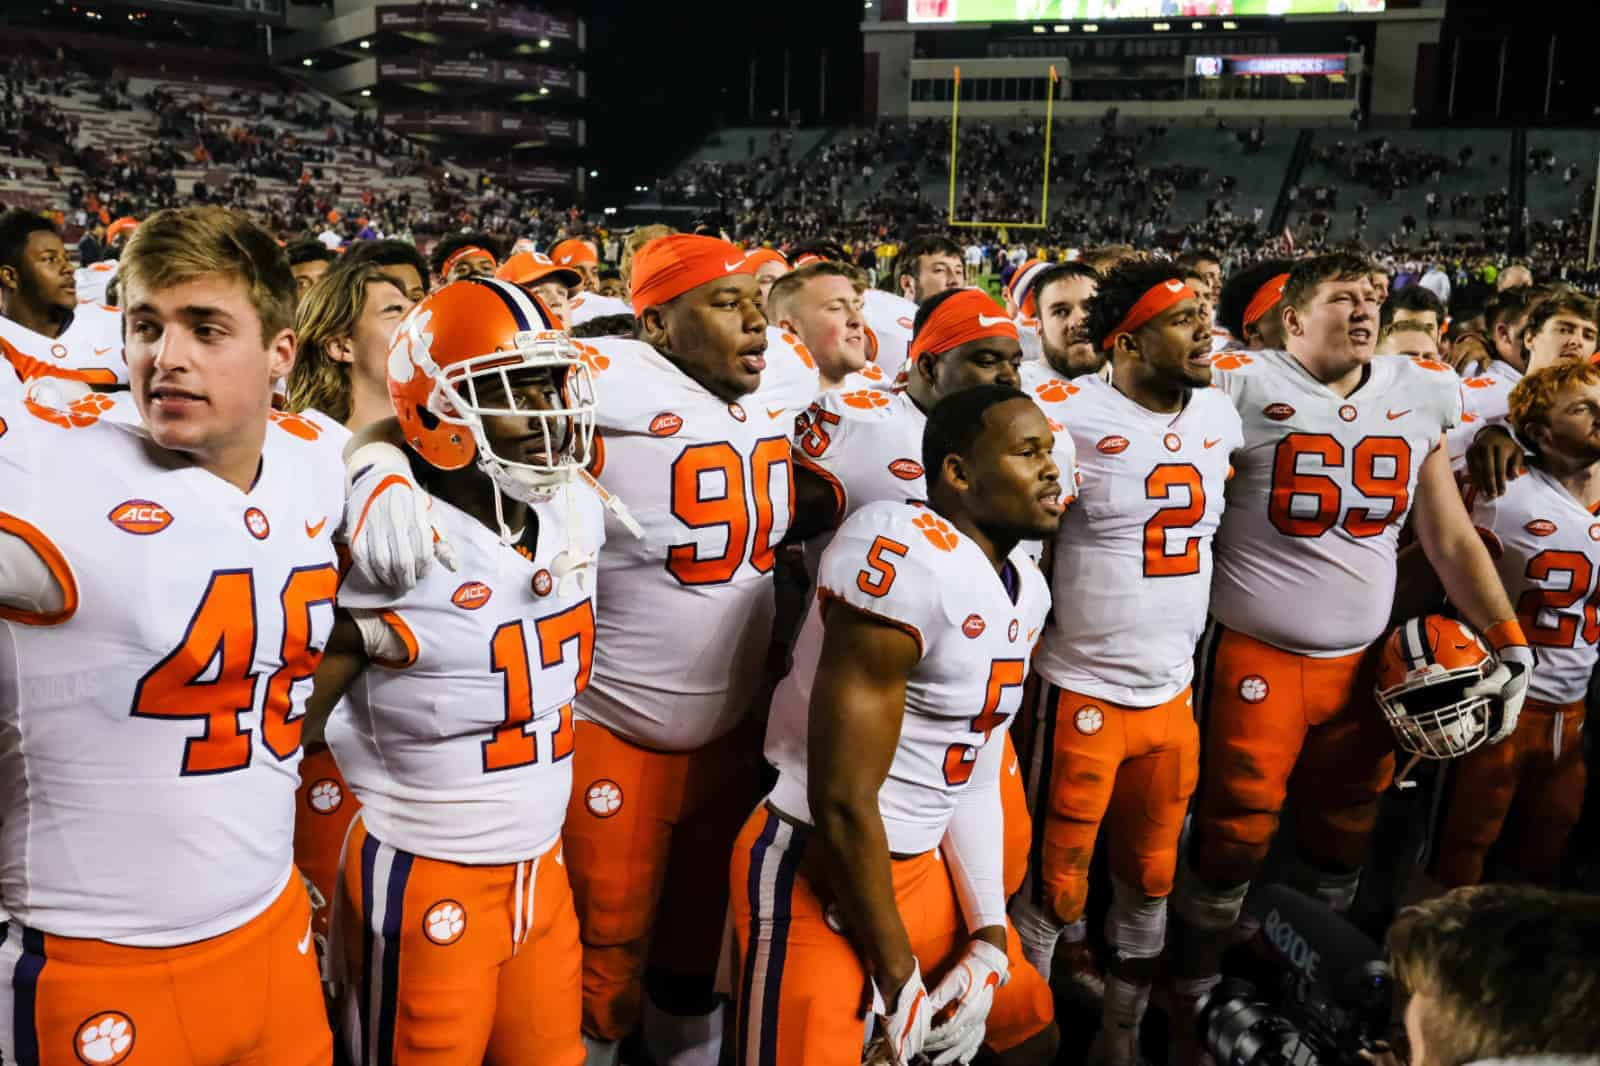 College Football Schedule: Clemson